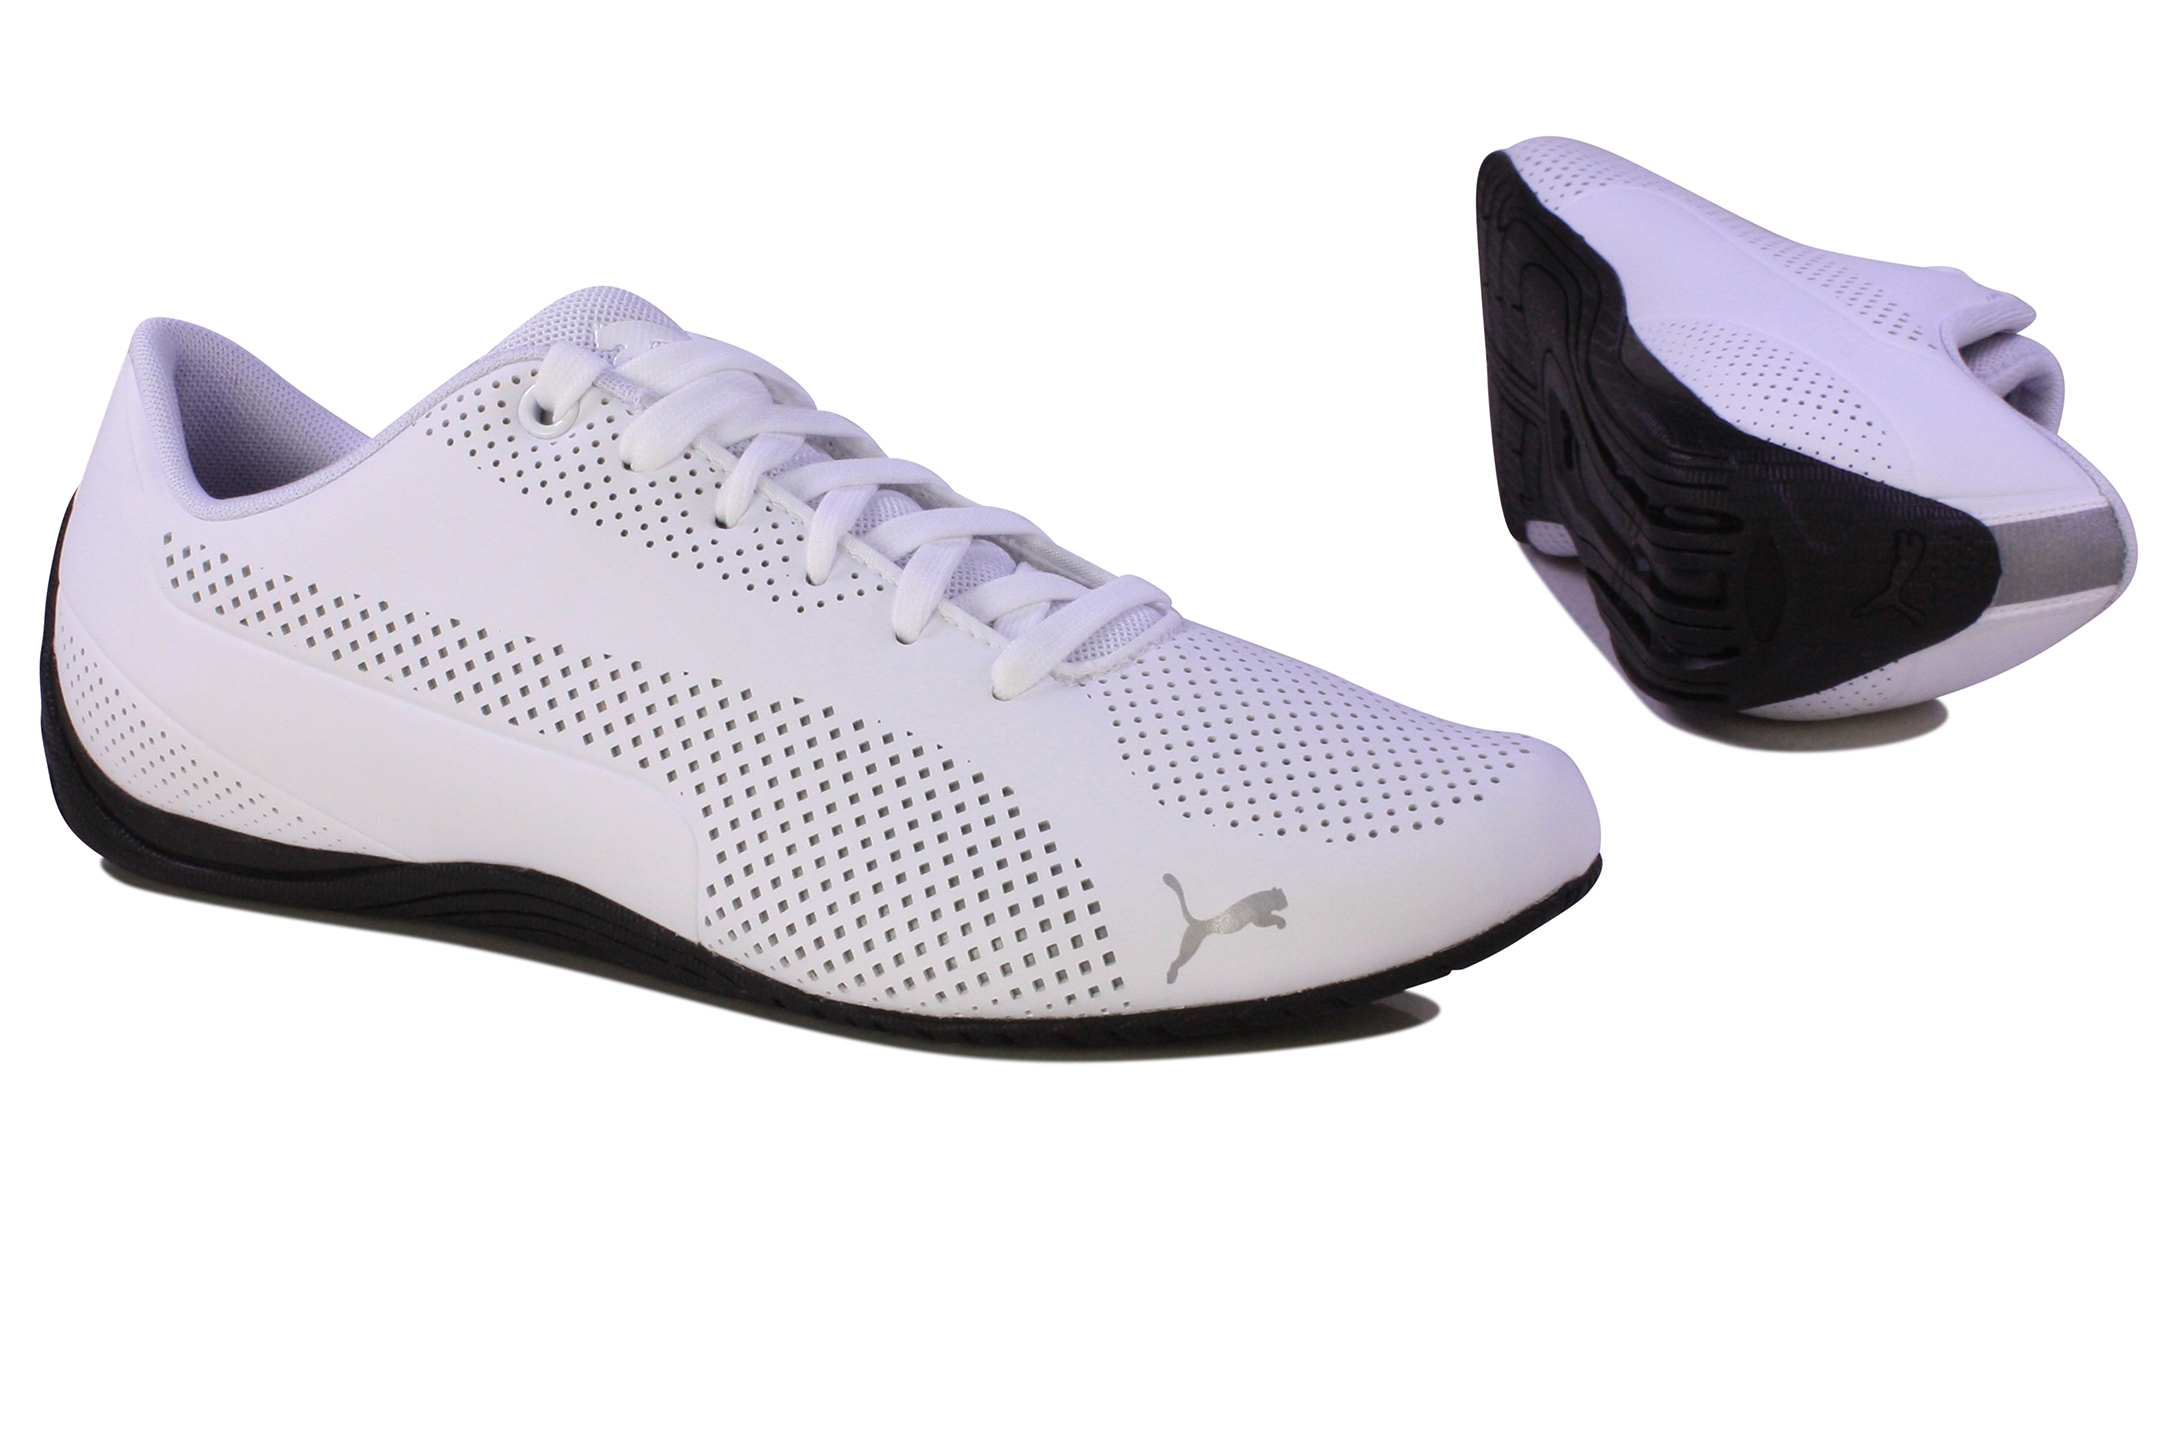 DRIFT CAT ULTRA REFLECTIVE 363814/03